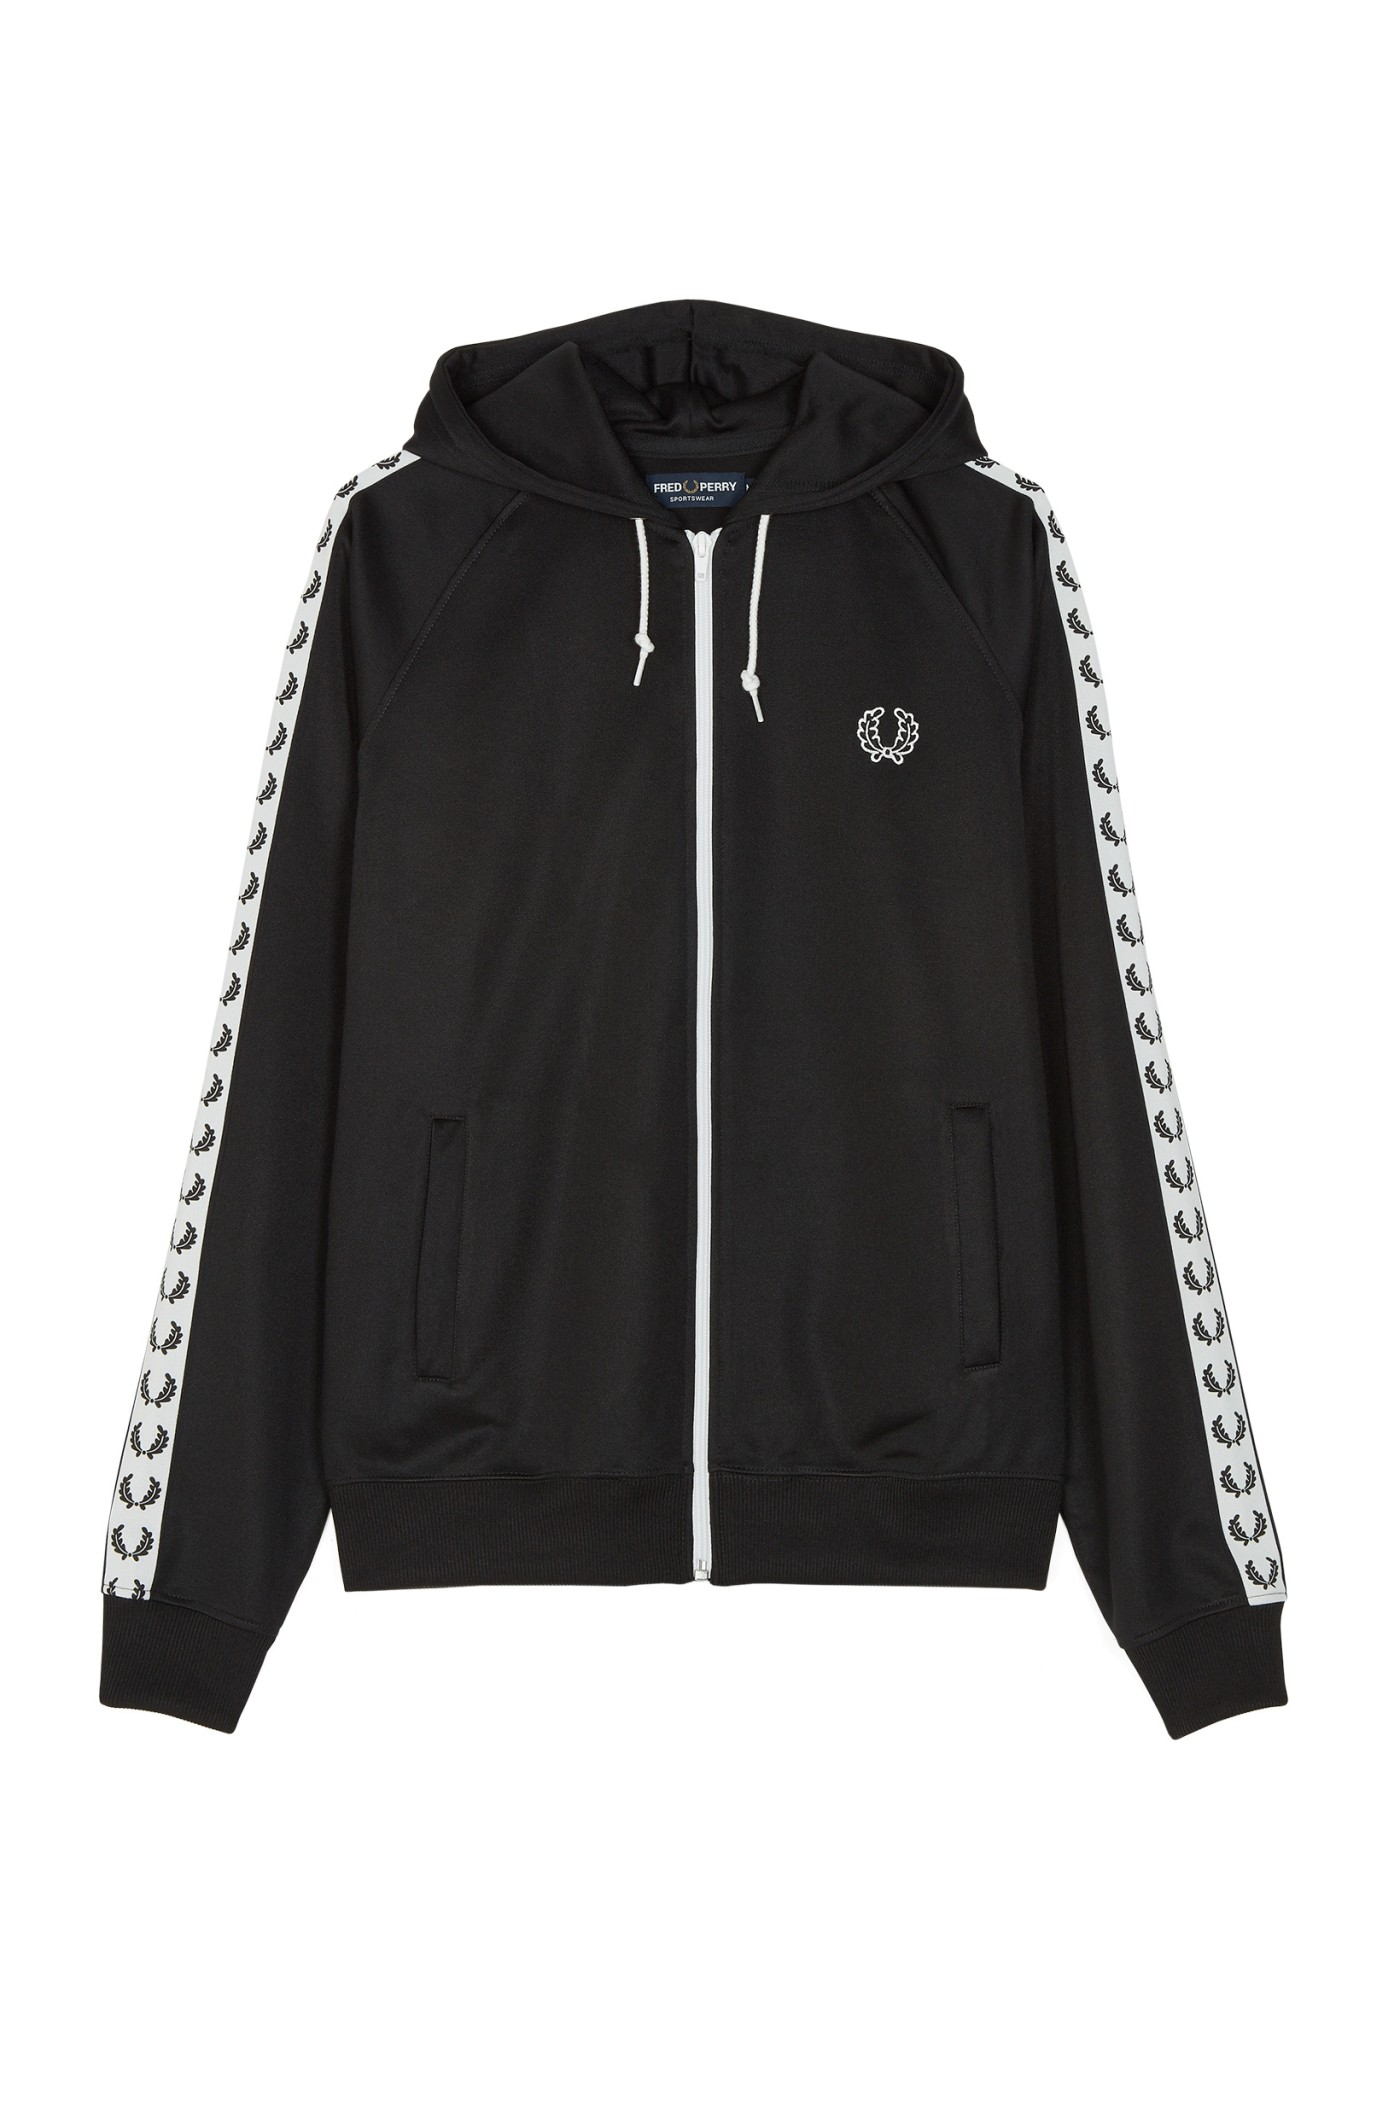 Fred Perry - Sports Authentic Taped Hooded Track Jacket Black